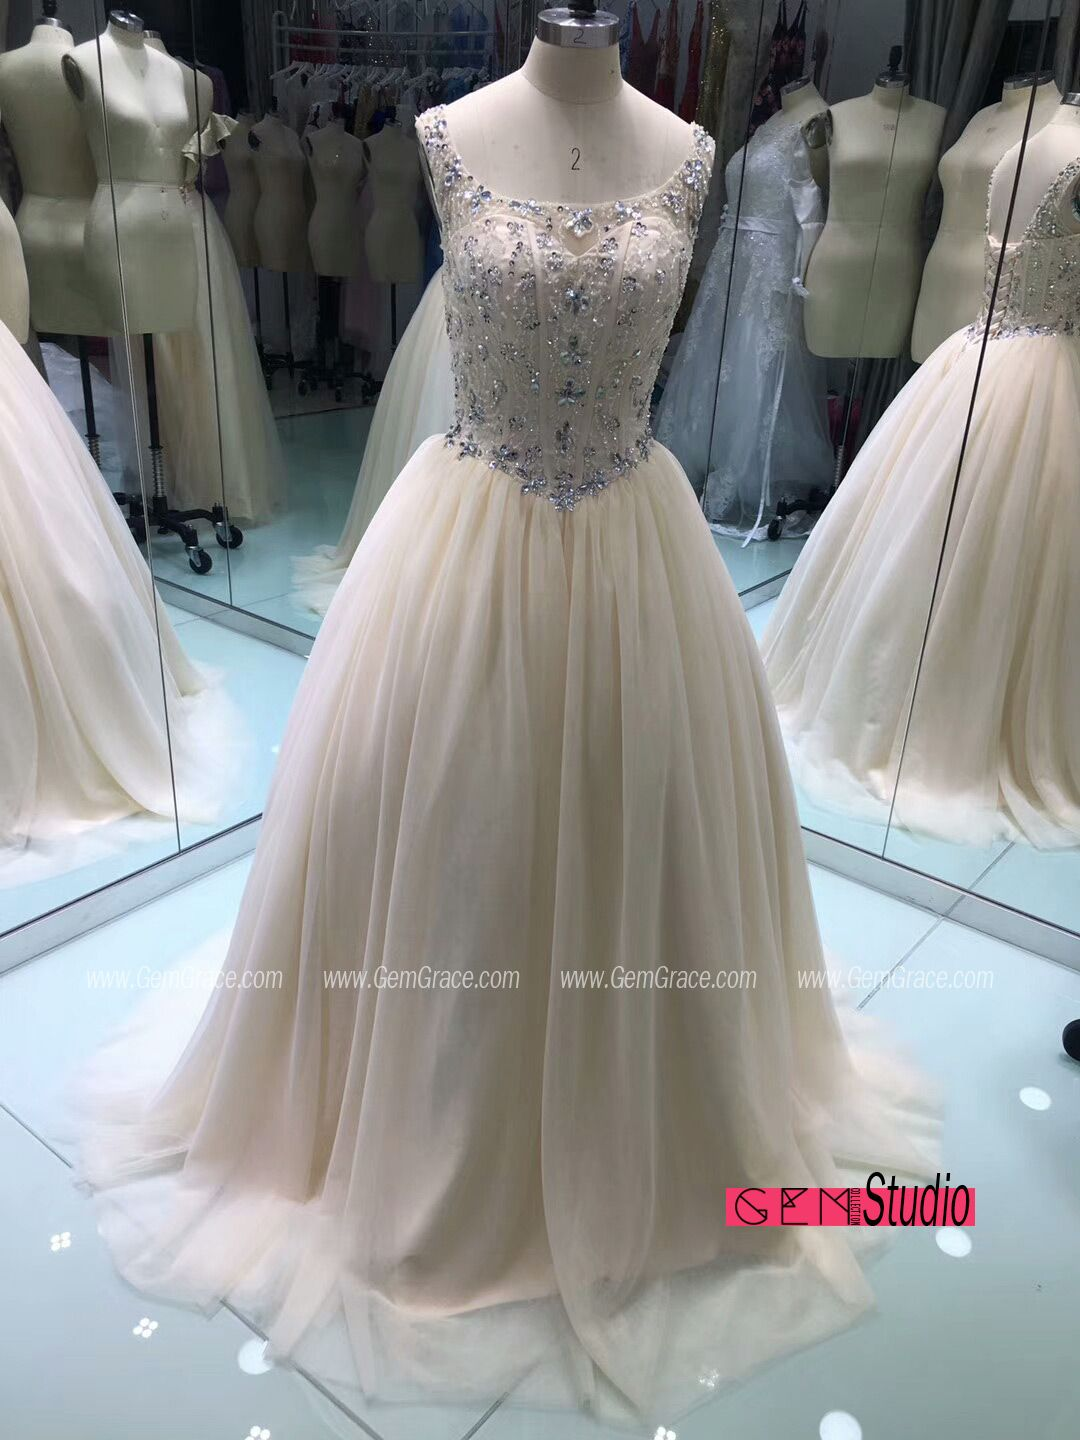 Flowy Ballgown Tulle Prom Dress with Beaded Top. Custom with heart ...